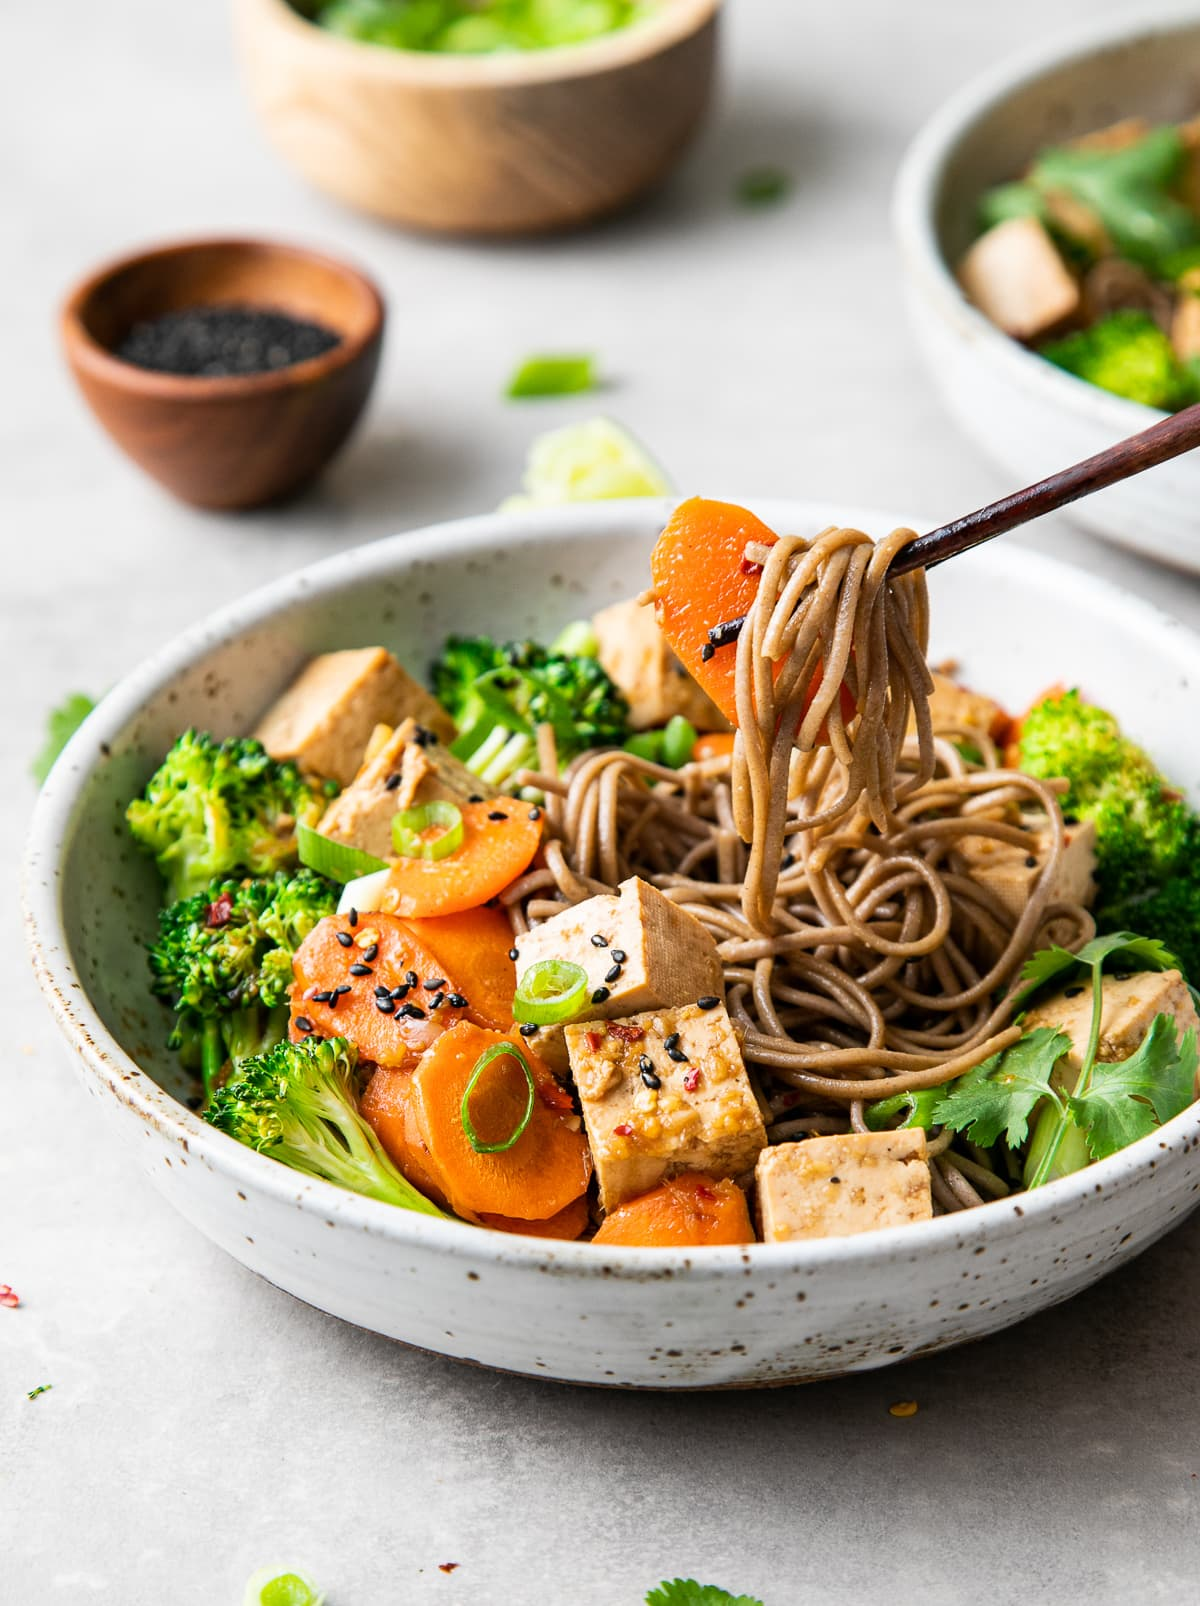 side angle view of chopsticks holding a bite of sesame soba noodle salad with tofu with items surrounding.